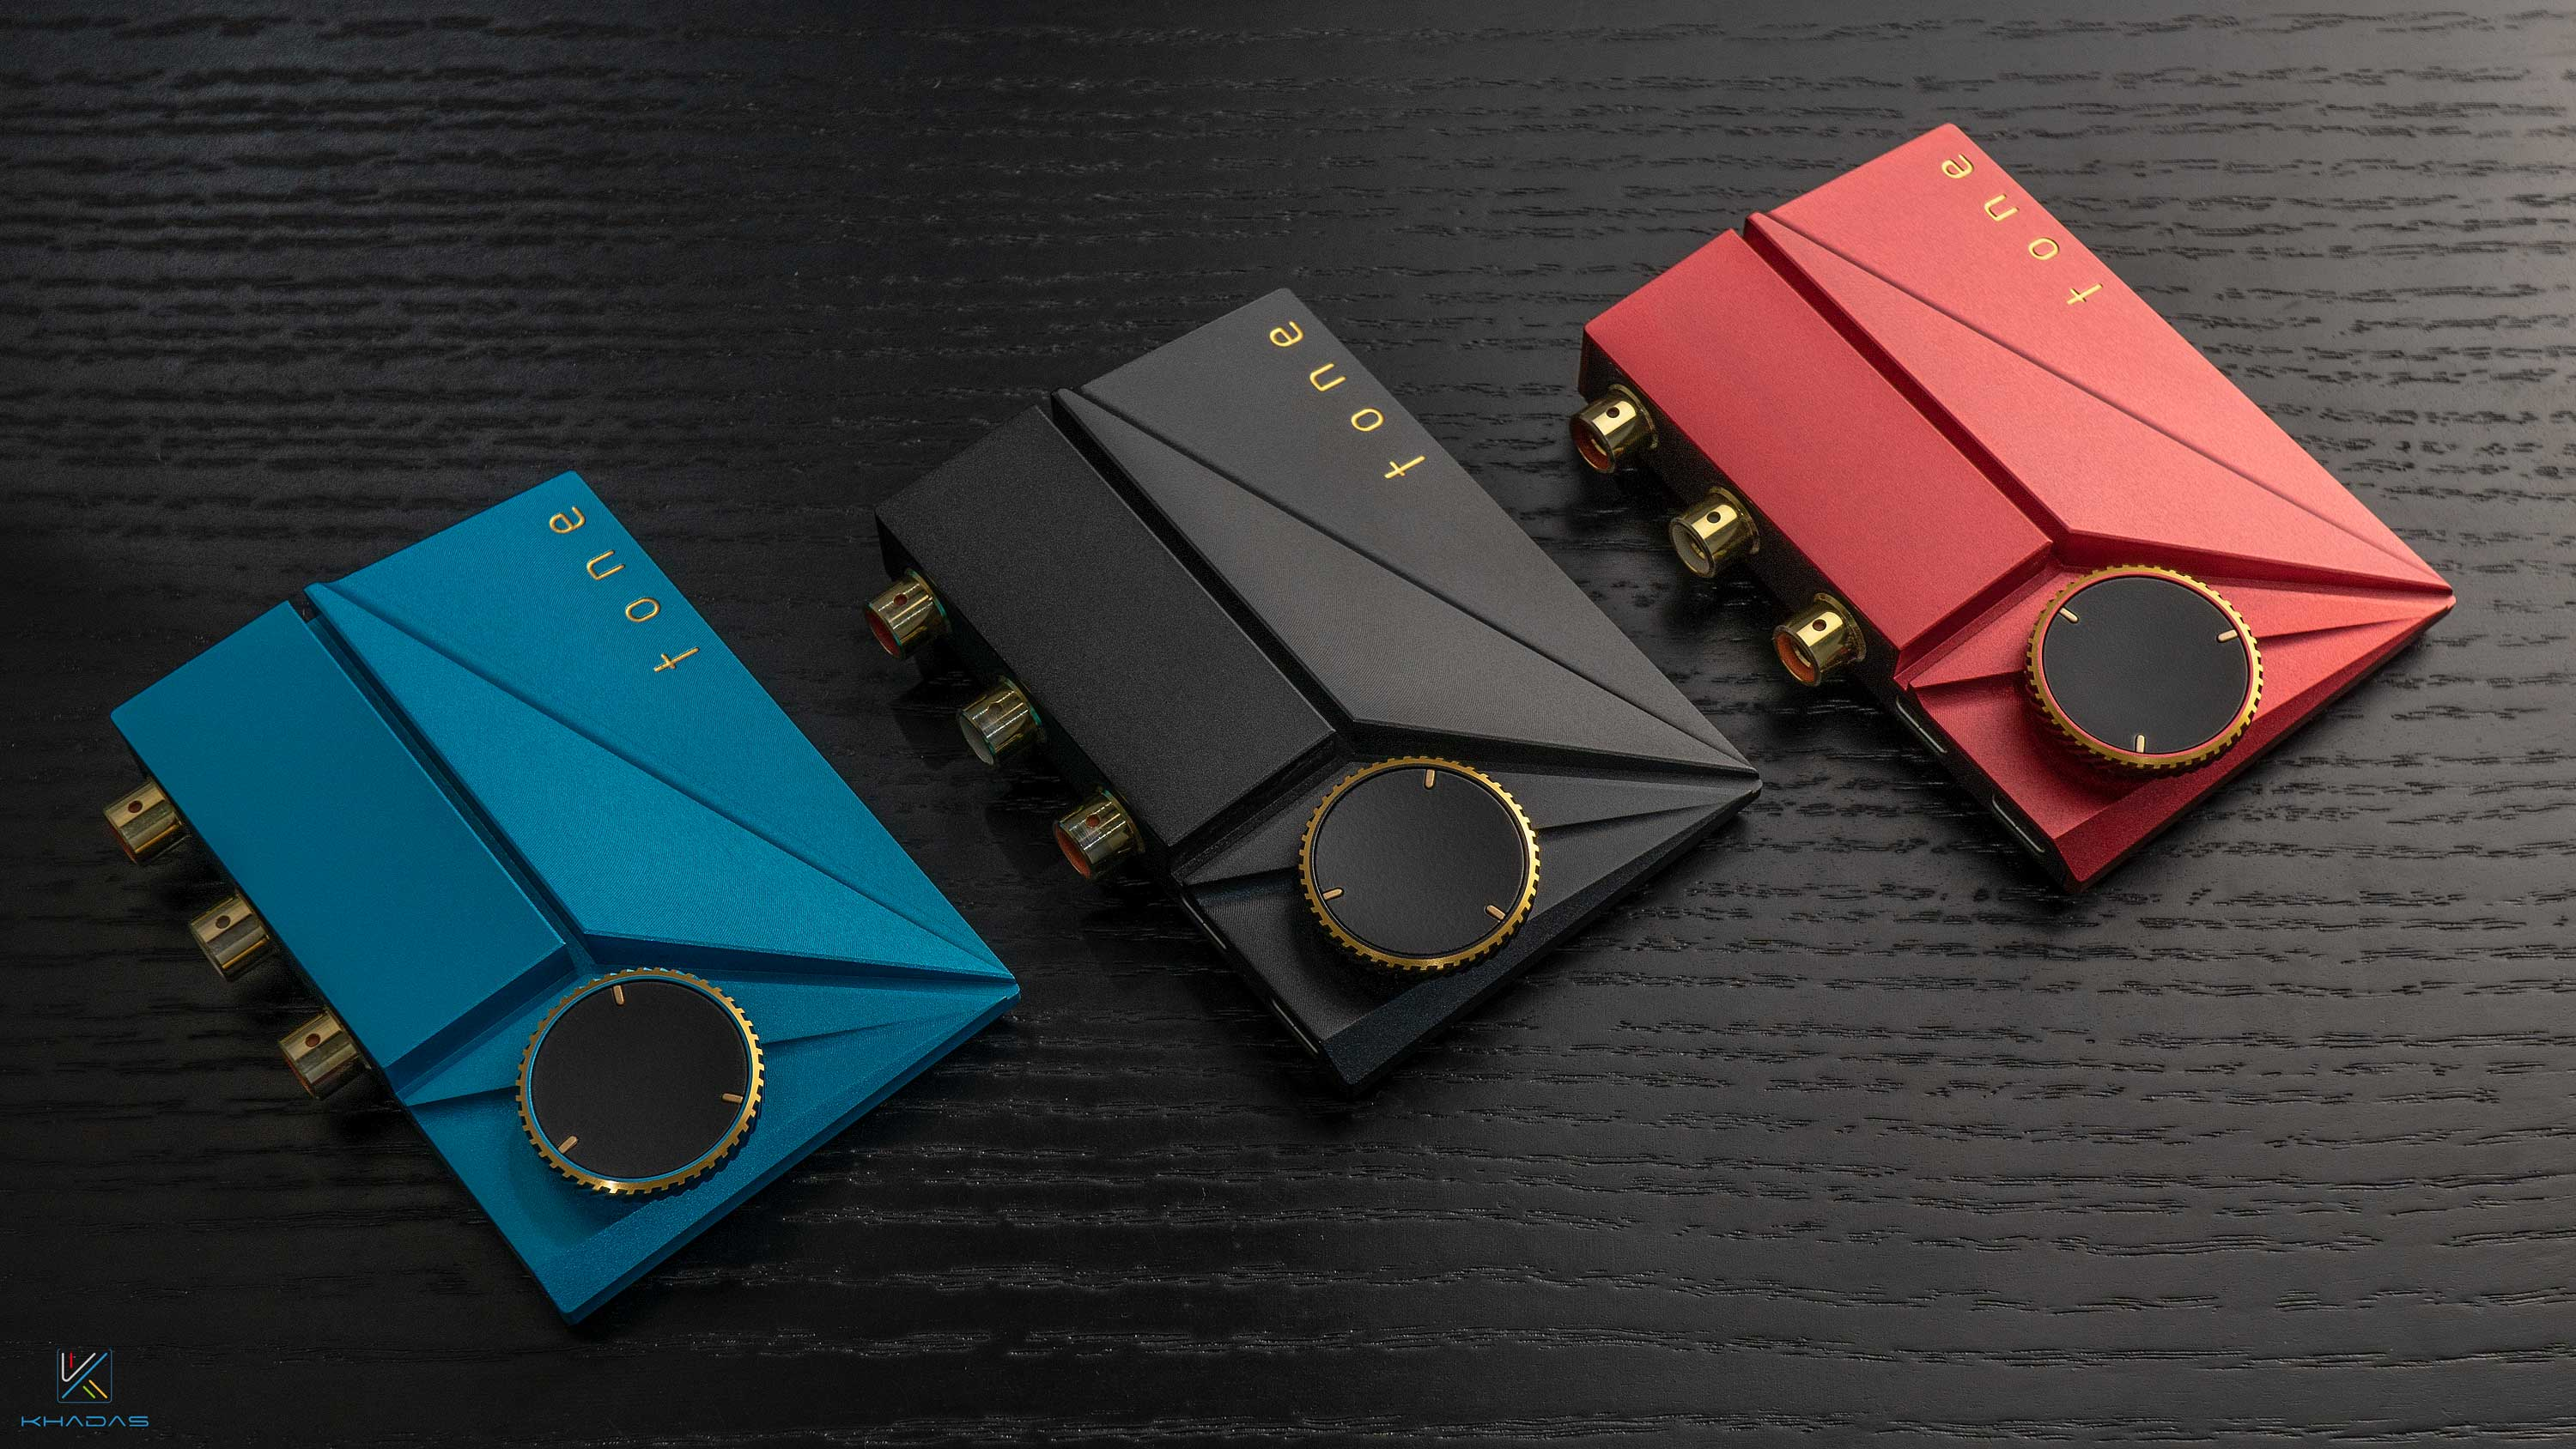 Tone2 Pro, water blue, onyx black and ruby red.